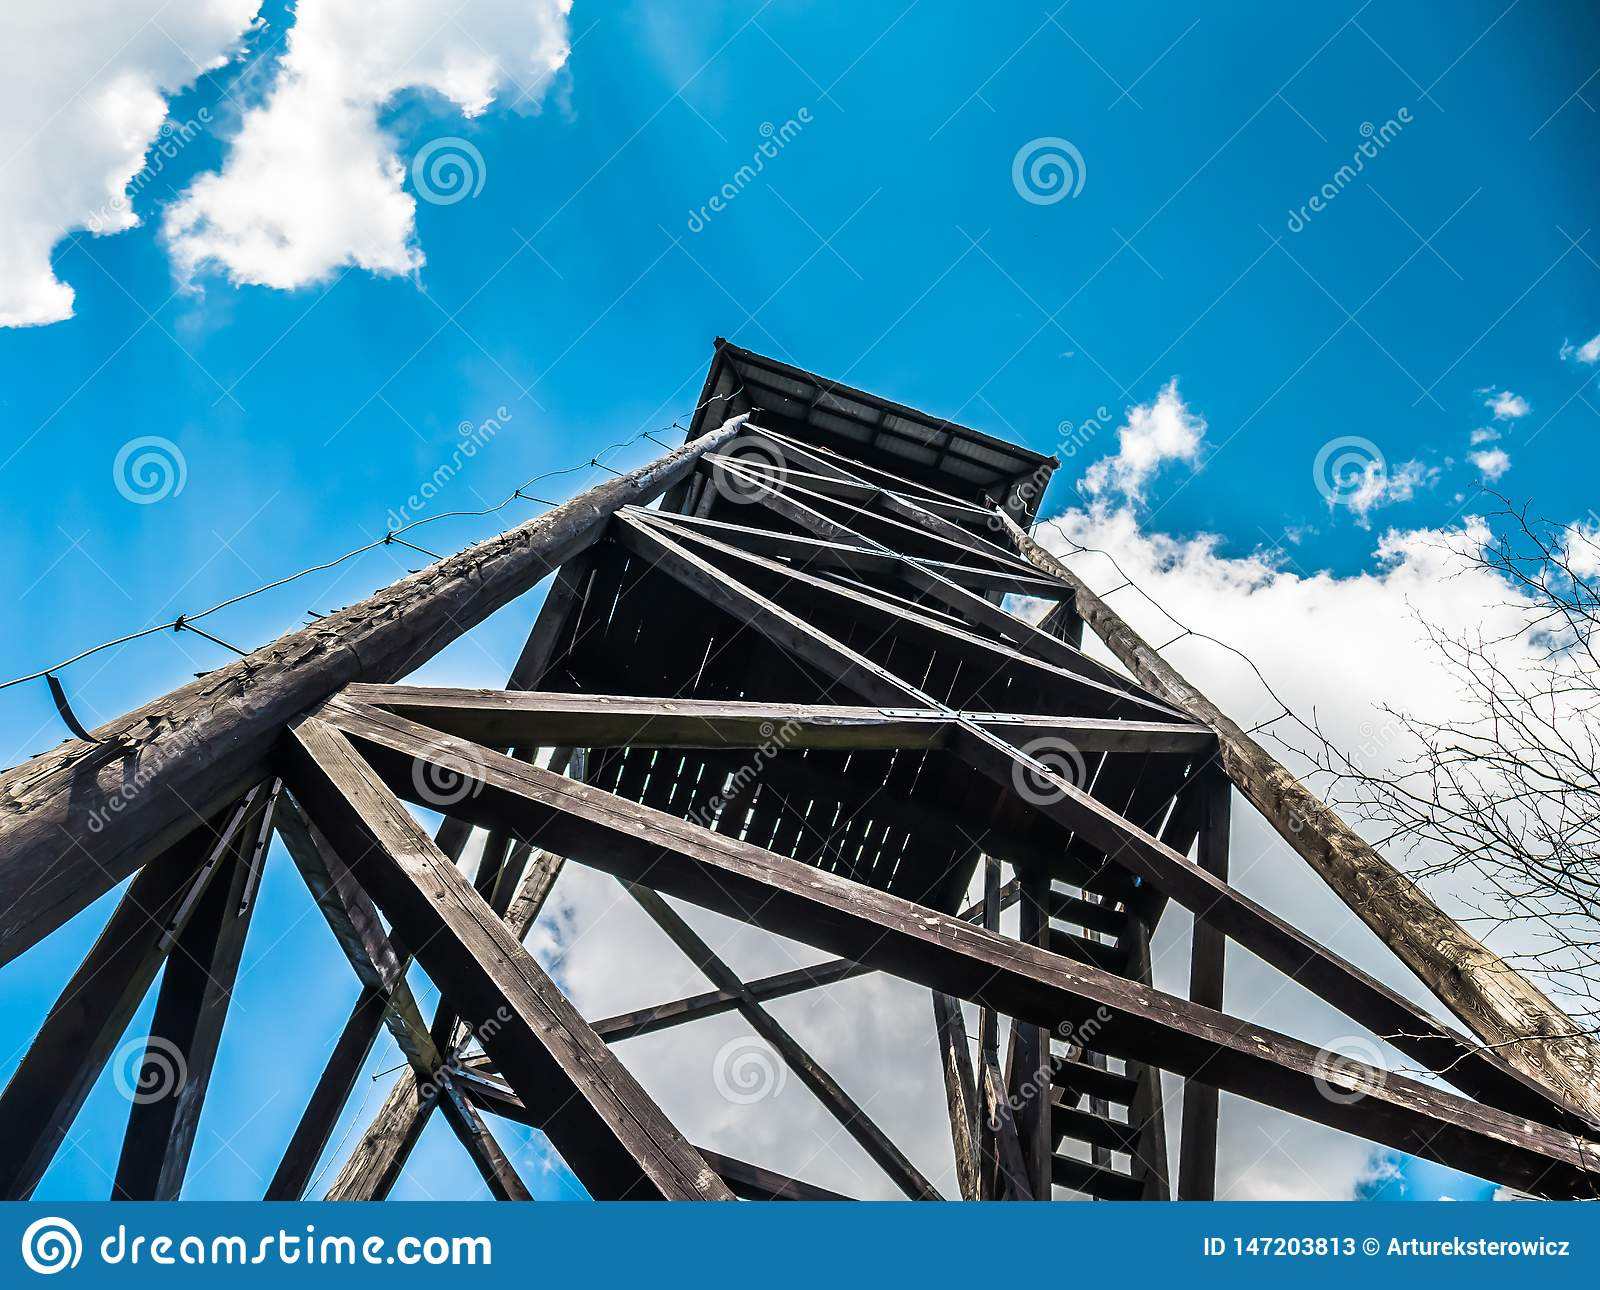 Wooden lookout tower in the mountains